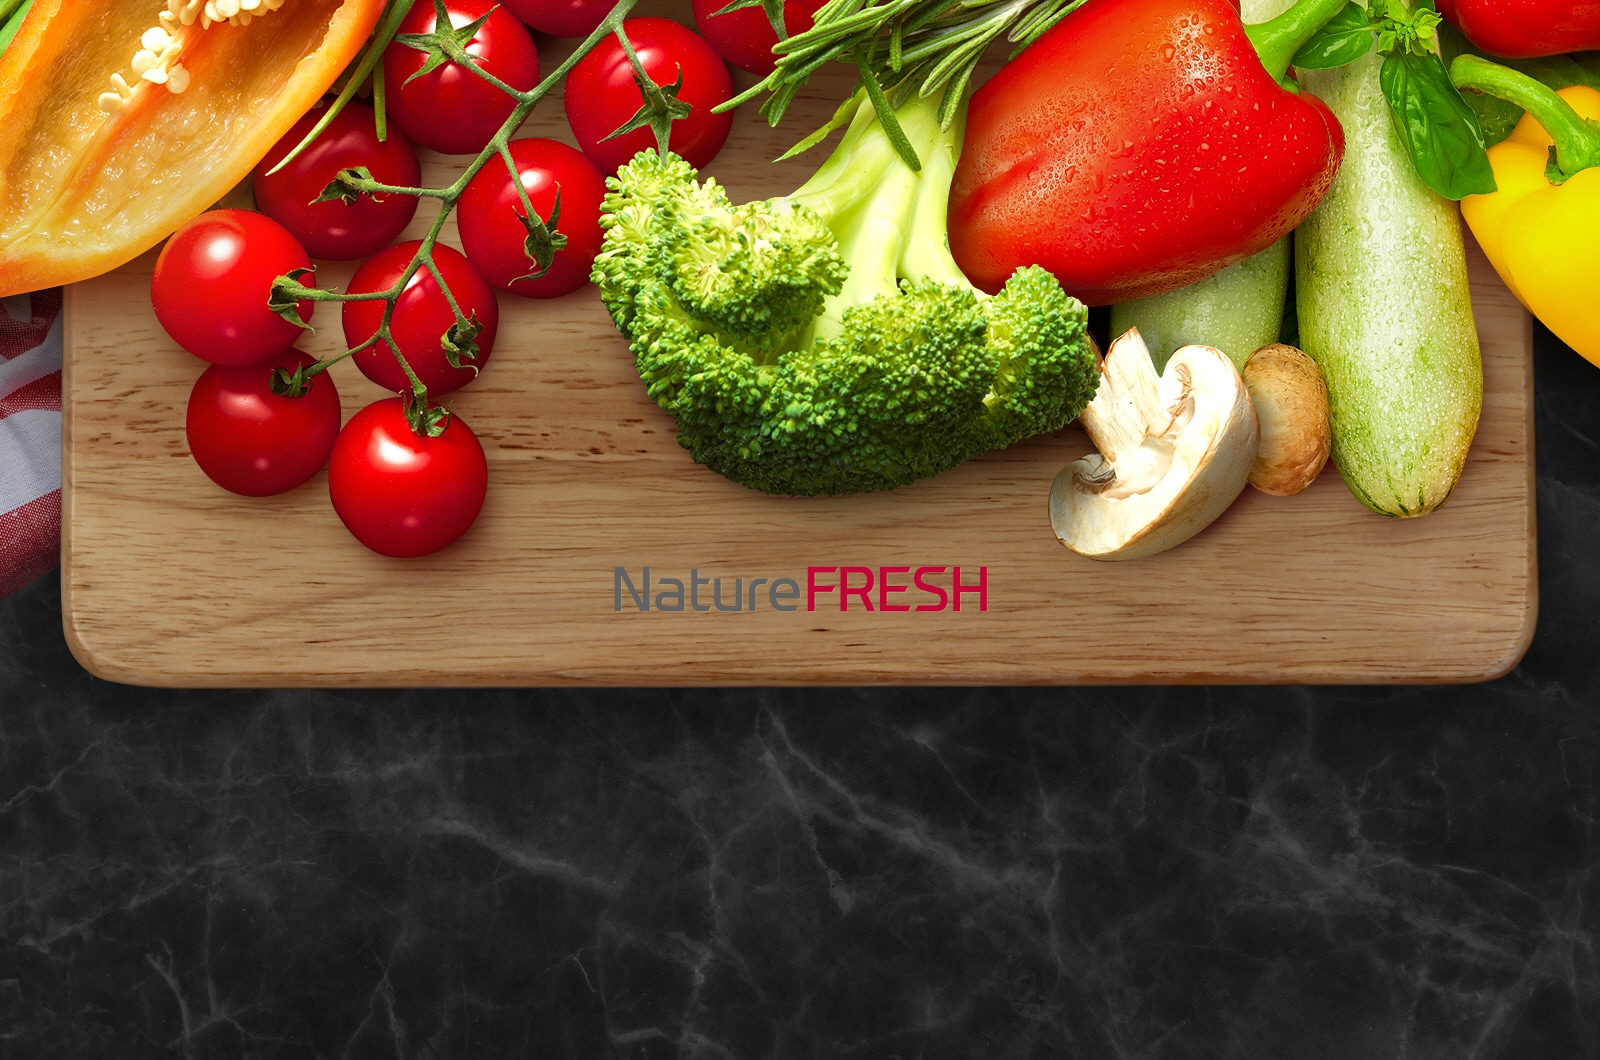 Global_Pollux_2016_Feature_02_NatureFRESH_D